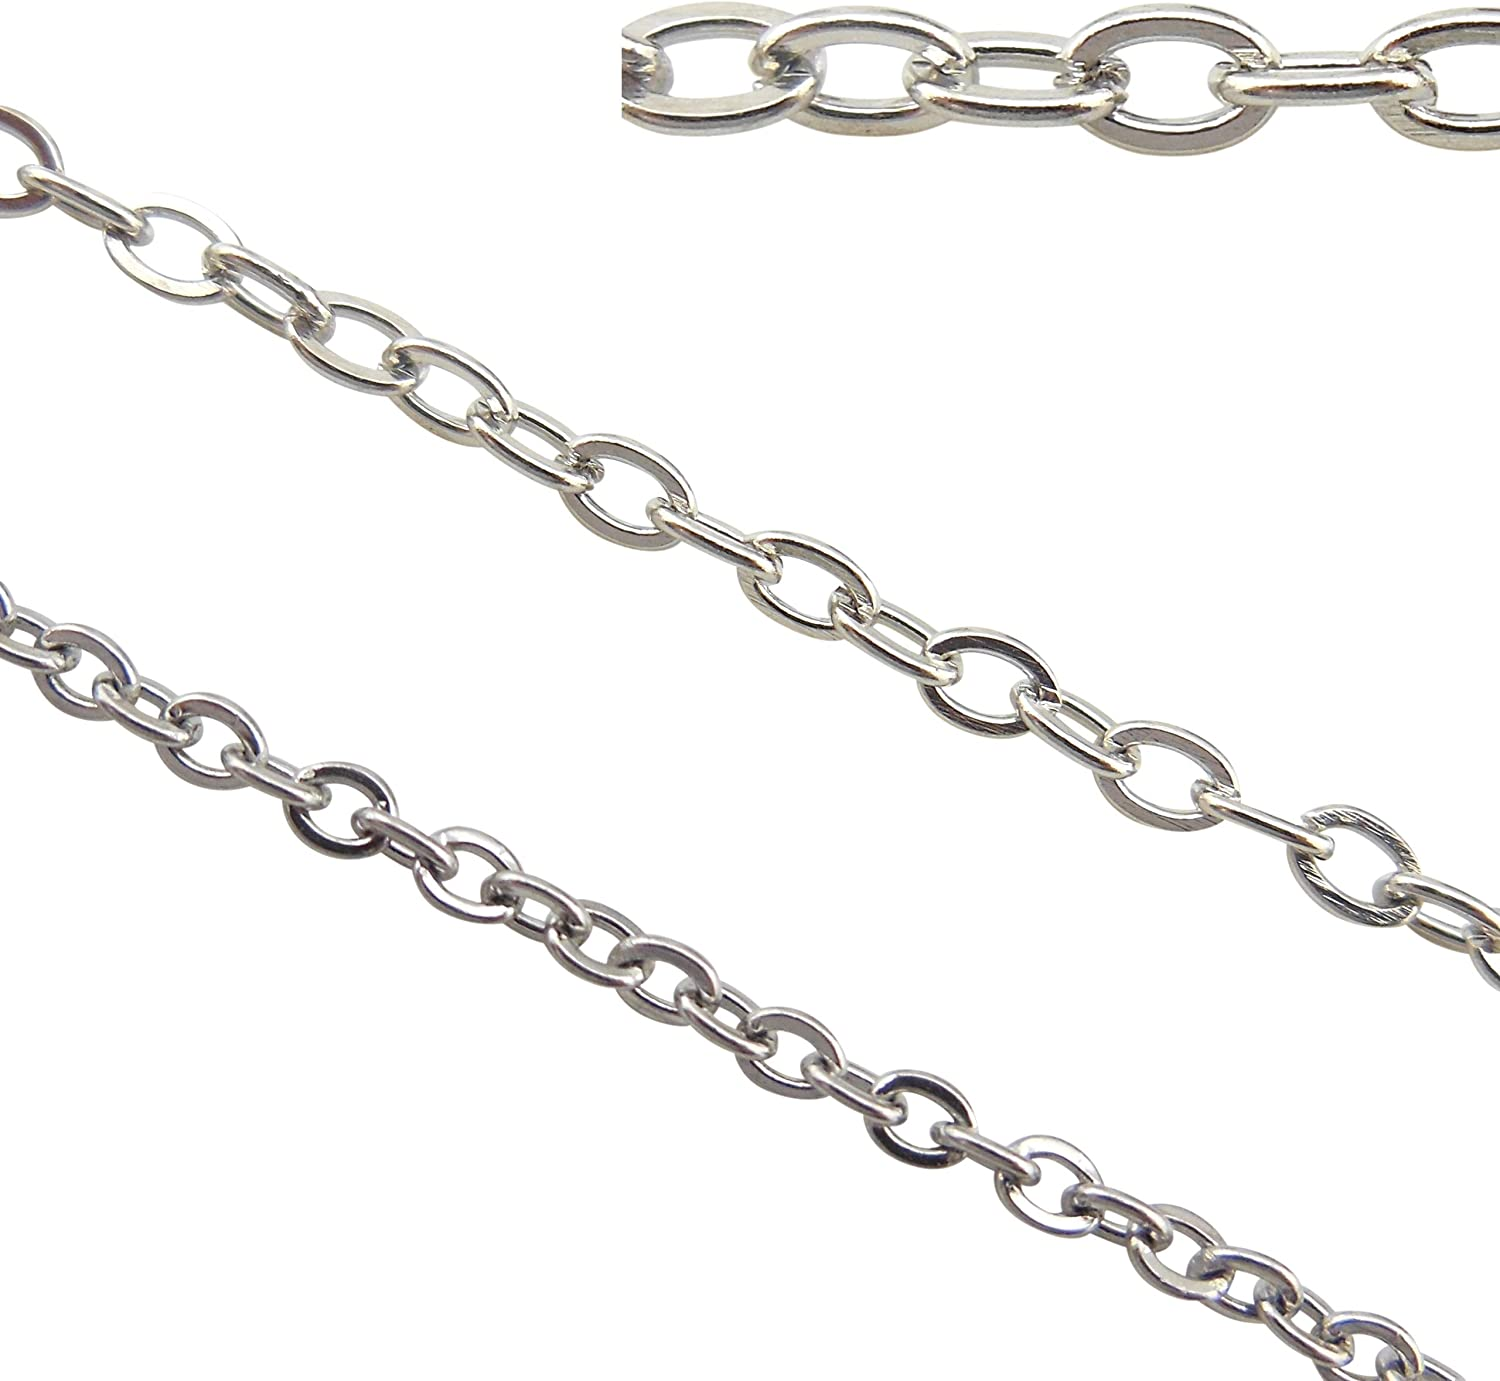 16.5ft 6mm Width Stainless Steel Rolo Cable Chains Findings Fit for Jewelry Making /&DIY SC-1027-E